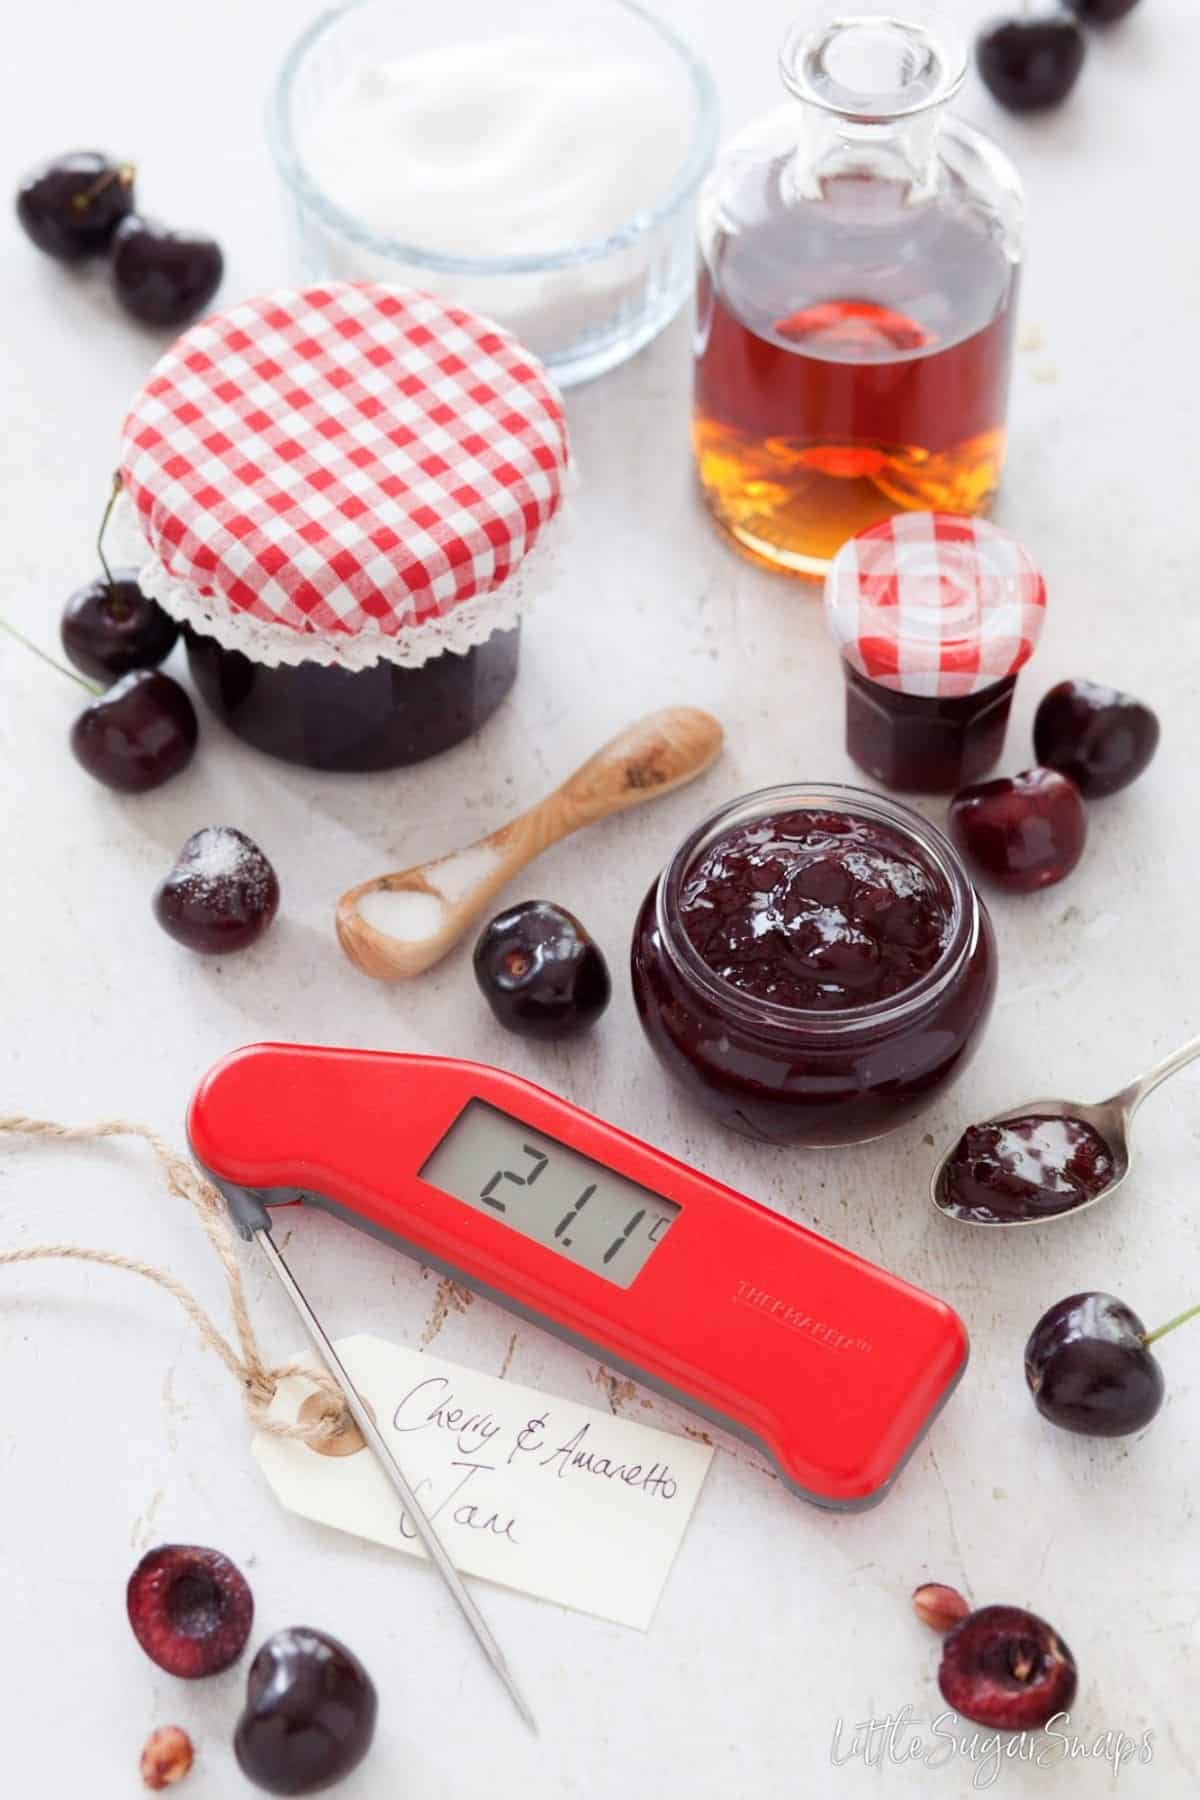 Amaretto Cherry Jam with fresh cherries and a digital food thermometer